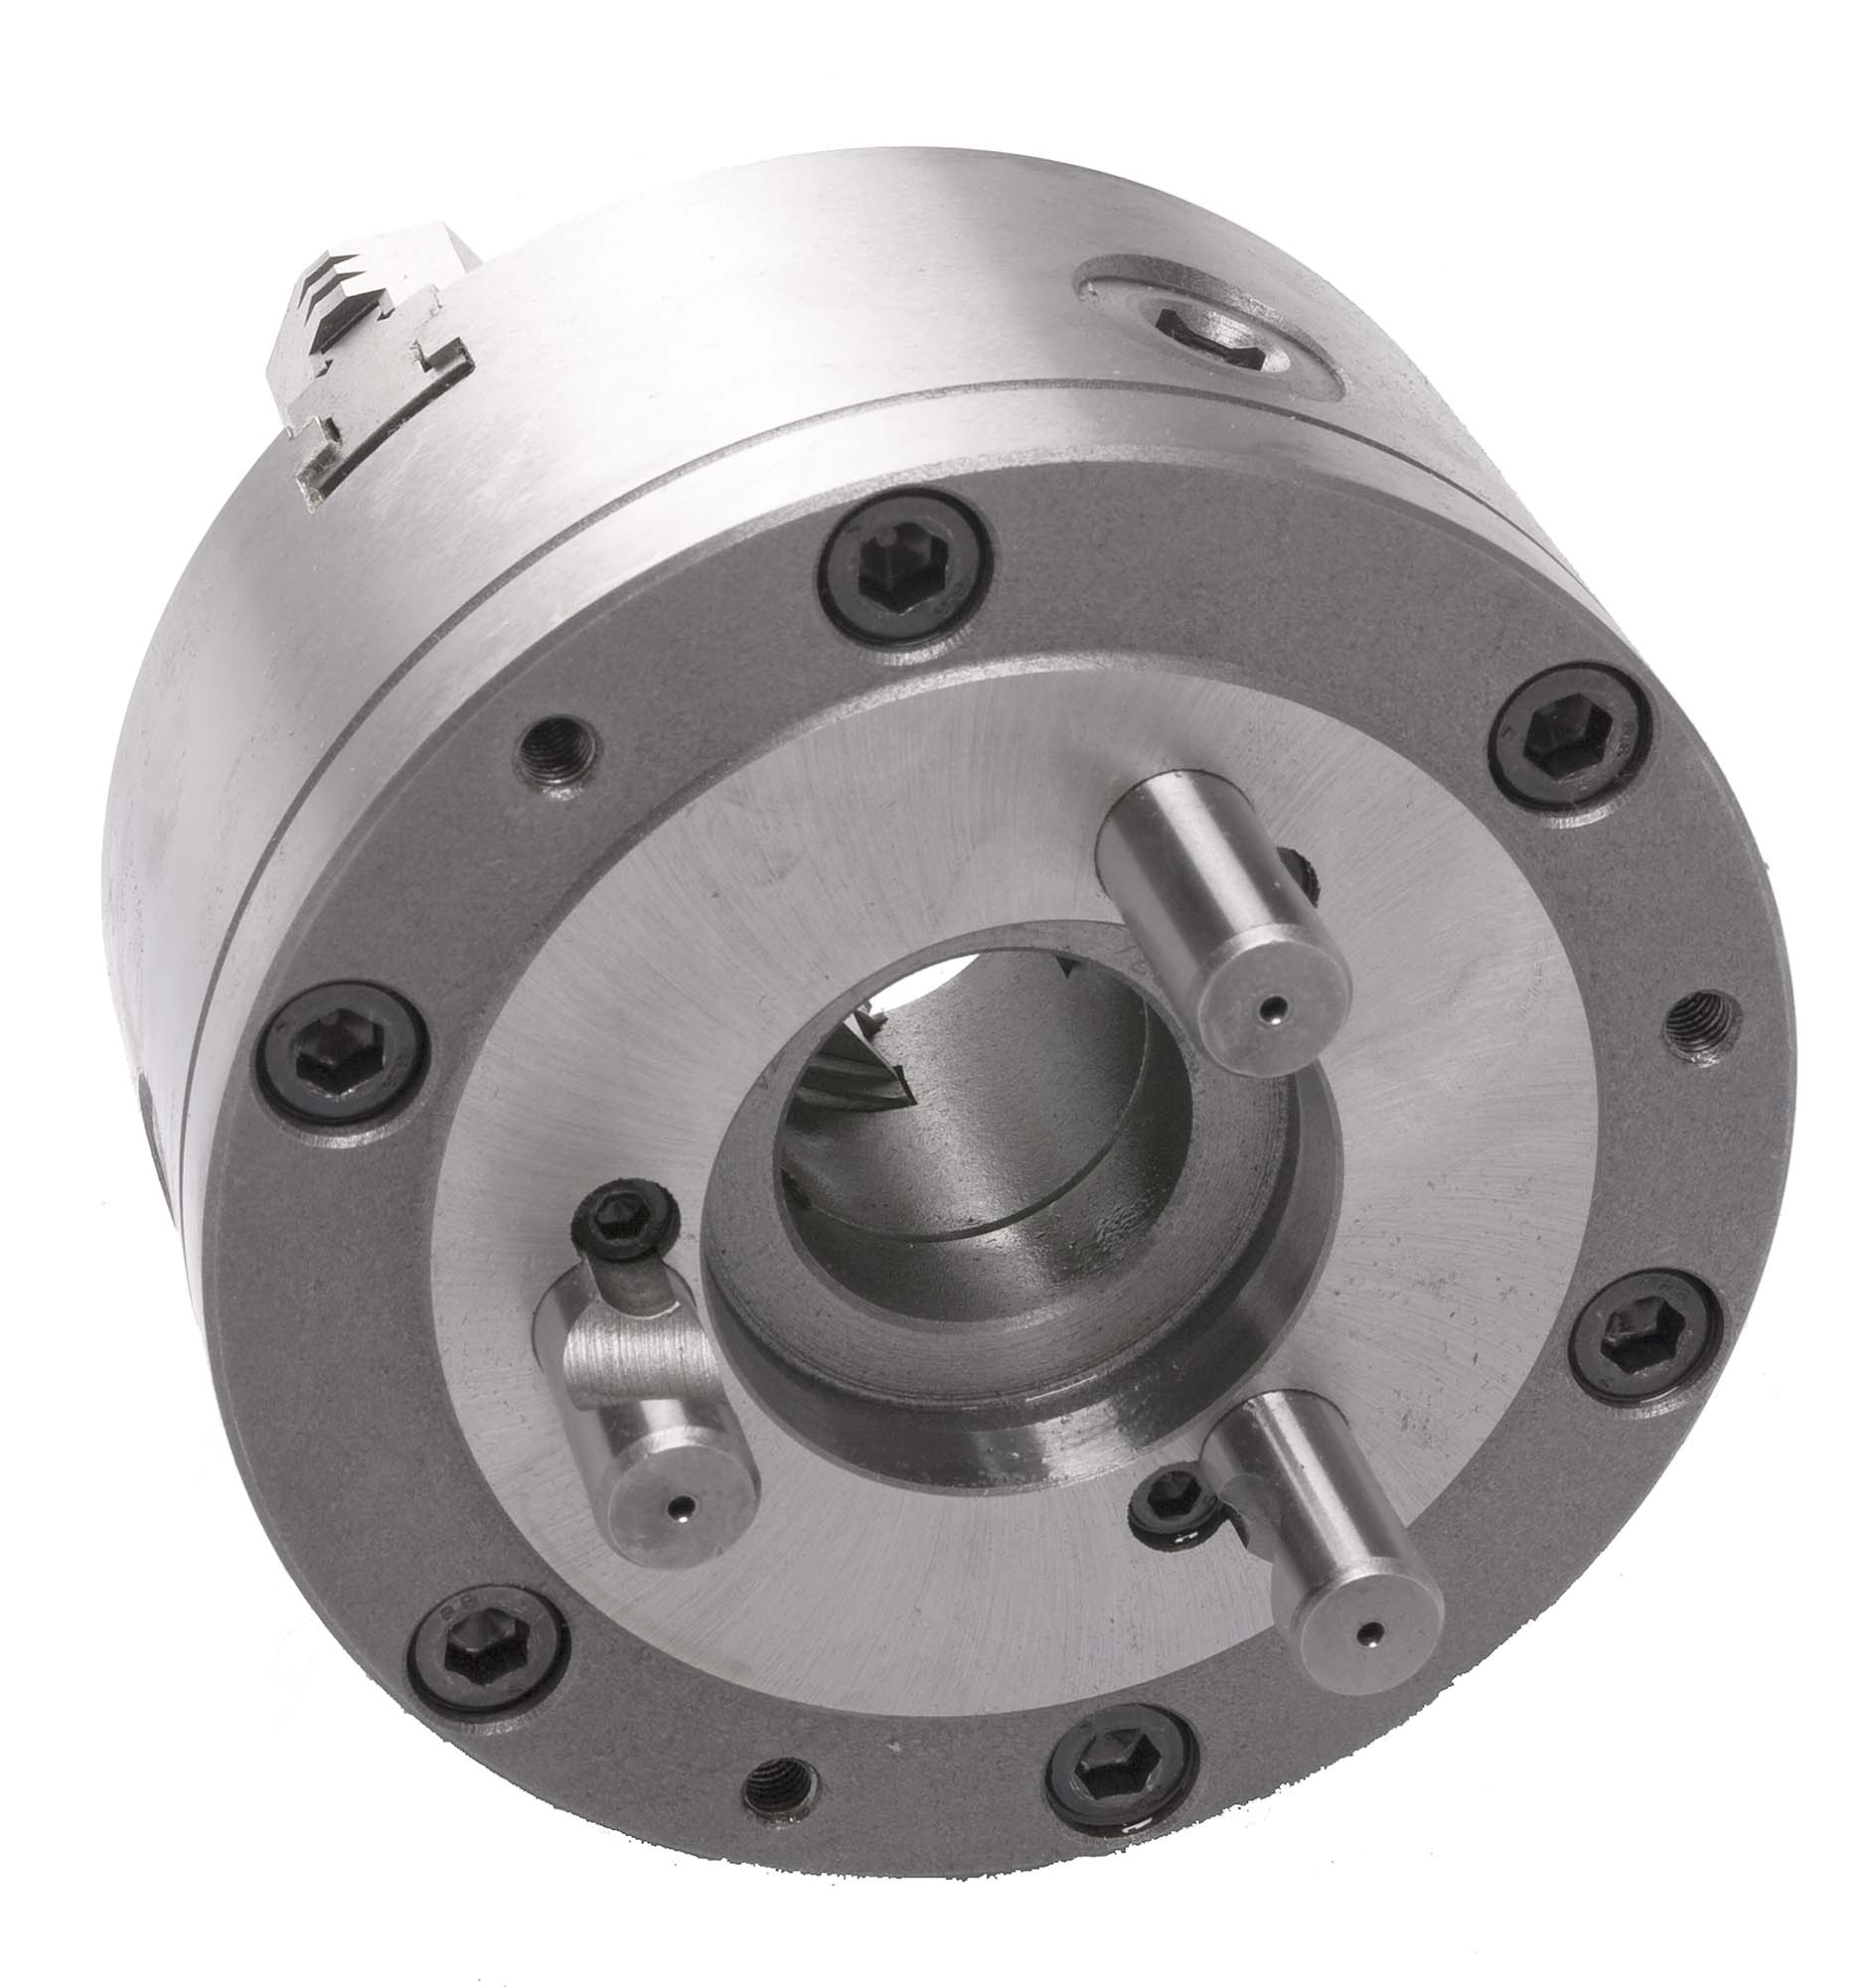 "Bison 7-803-0836 8"" D-1-6 3 Jaw Universal Lathe Chuck with two-piece jaws"